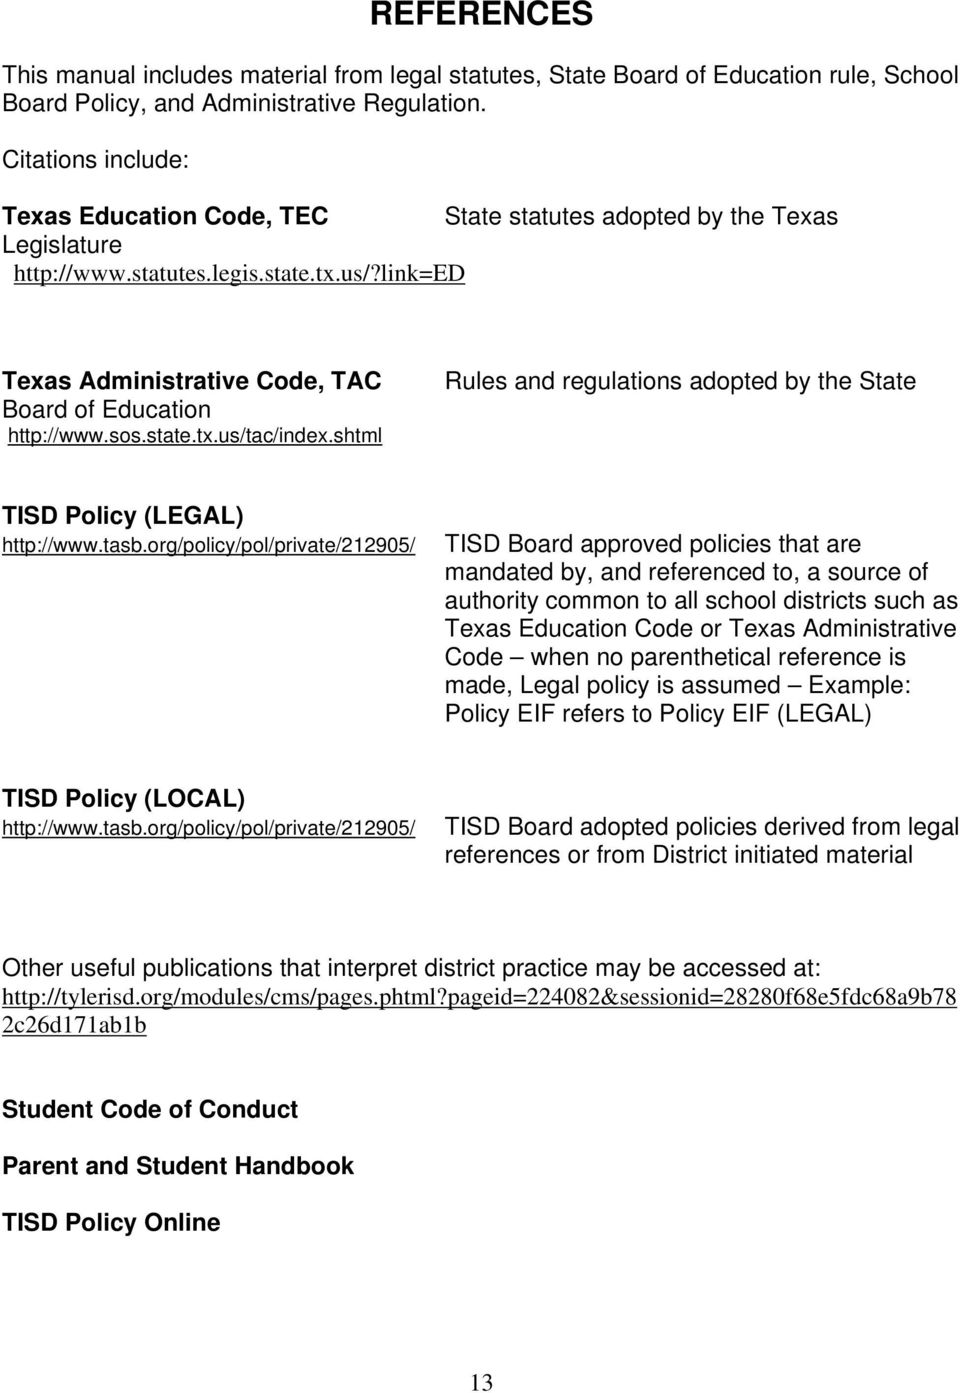 link=ed Texas Administrative Code, TAC Board of Education http://www.sos.state.tx.us/tac/index.shtml Rules and regulations adopted by the State TISD Policy (LEGAL) http://www.tasb.